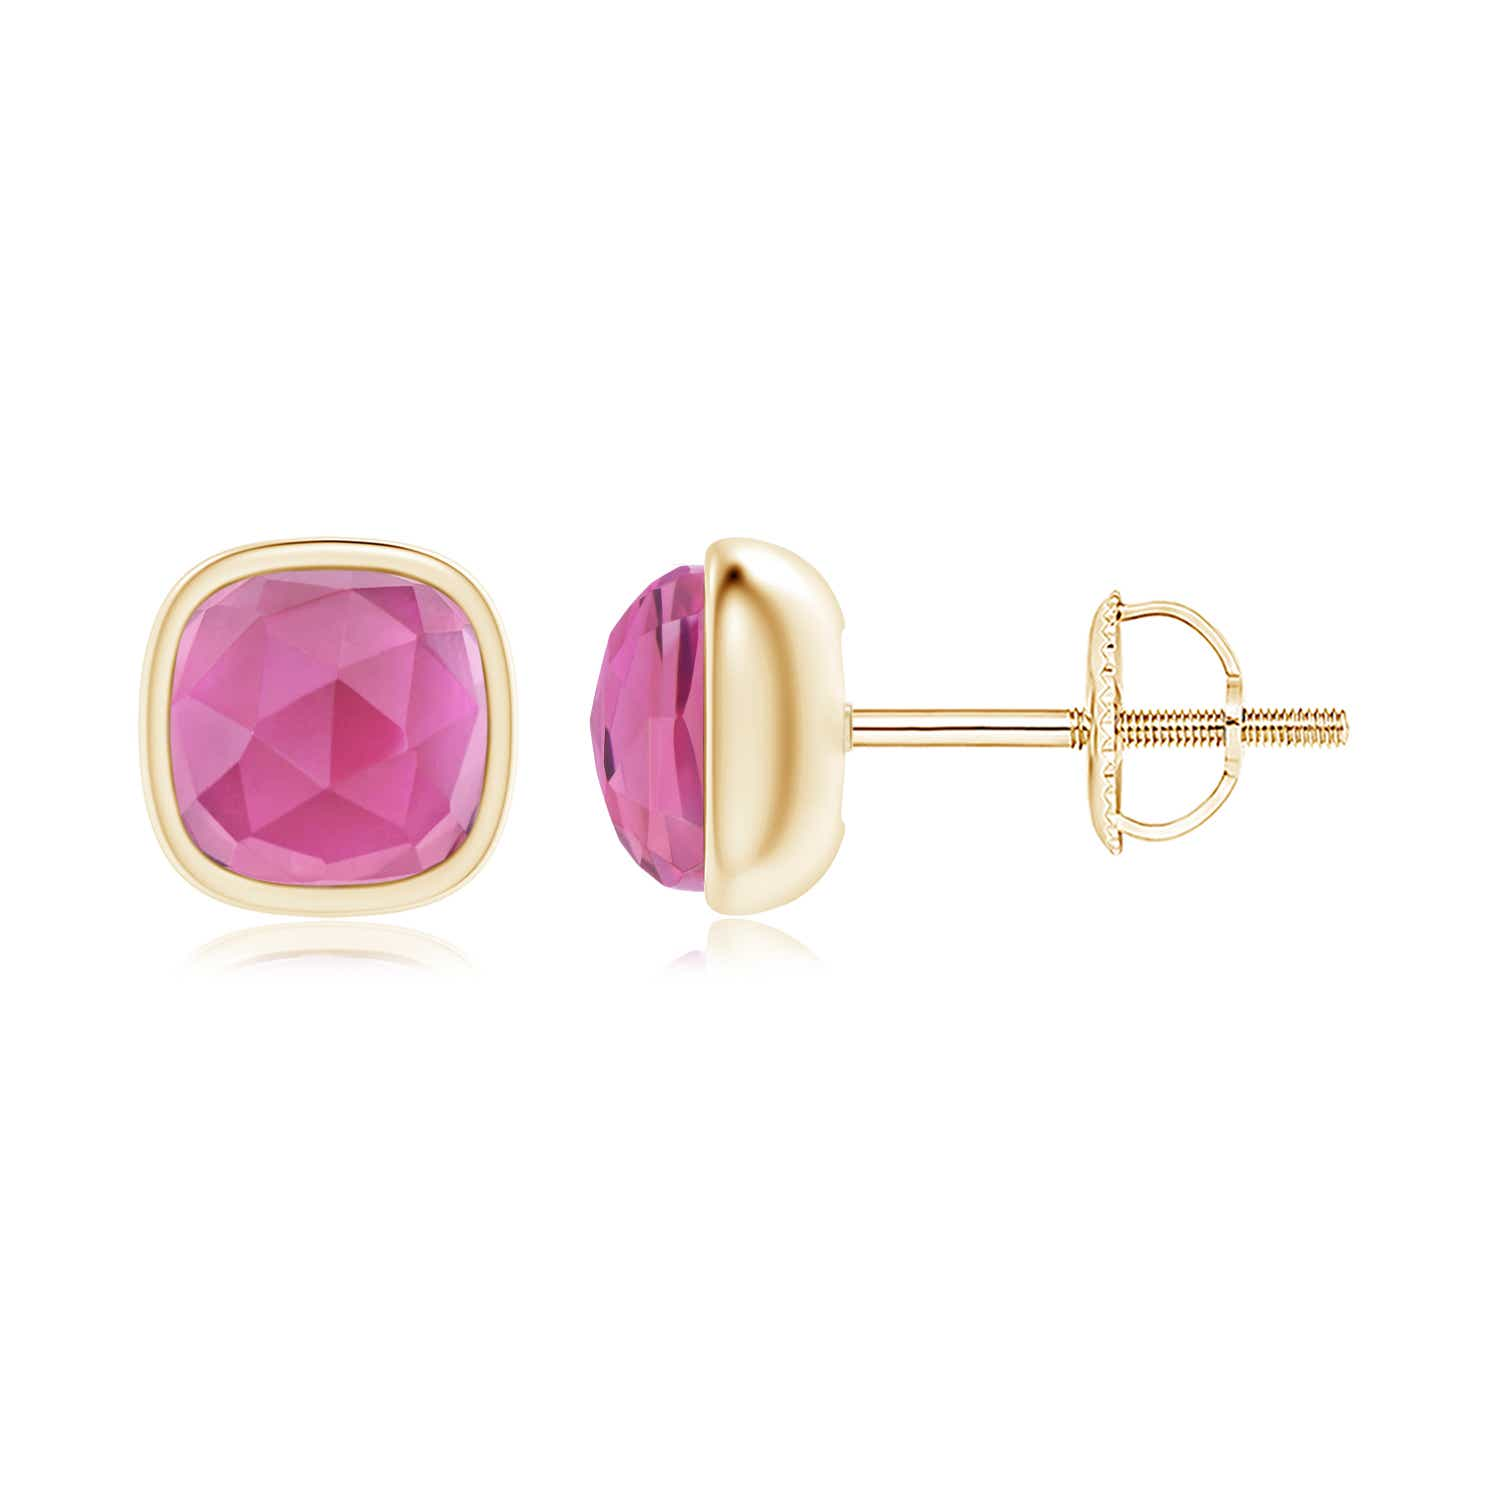 Angara Oval Pink Tourmaline Stud Earrings with Diamond in 14K White Gold OhNj5V